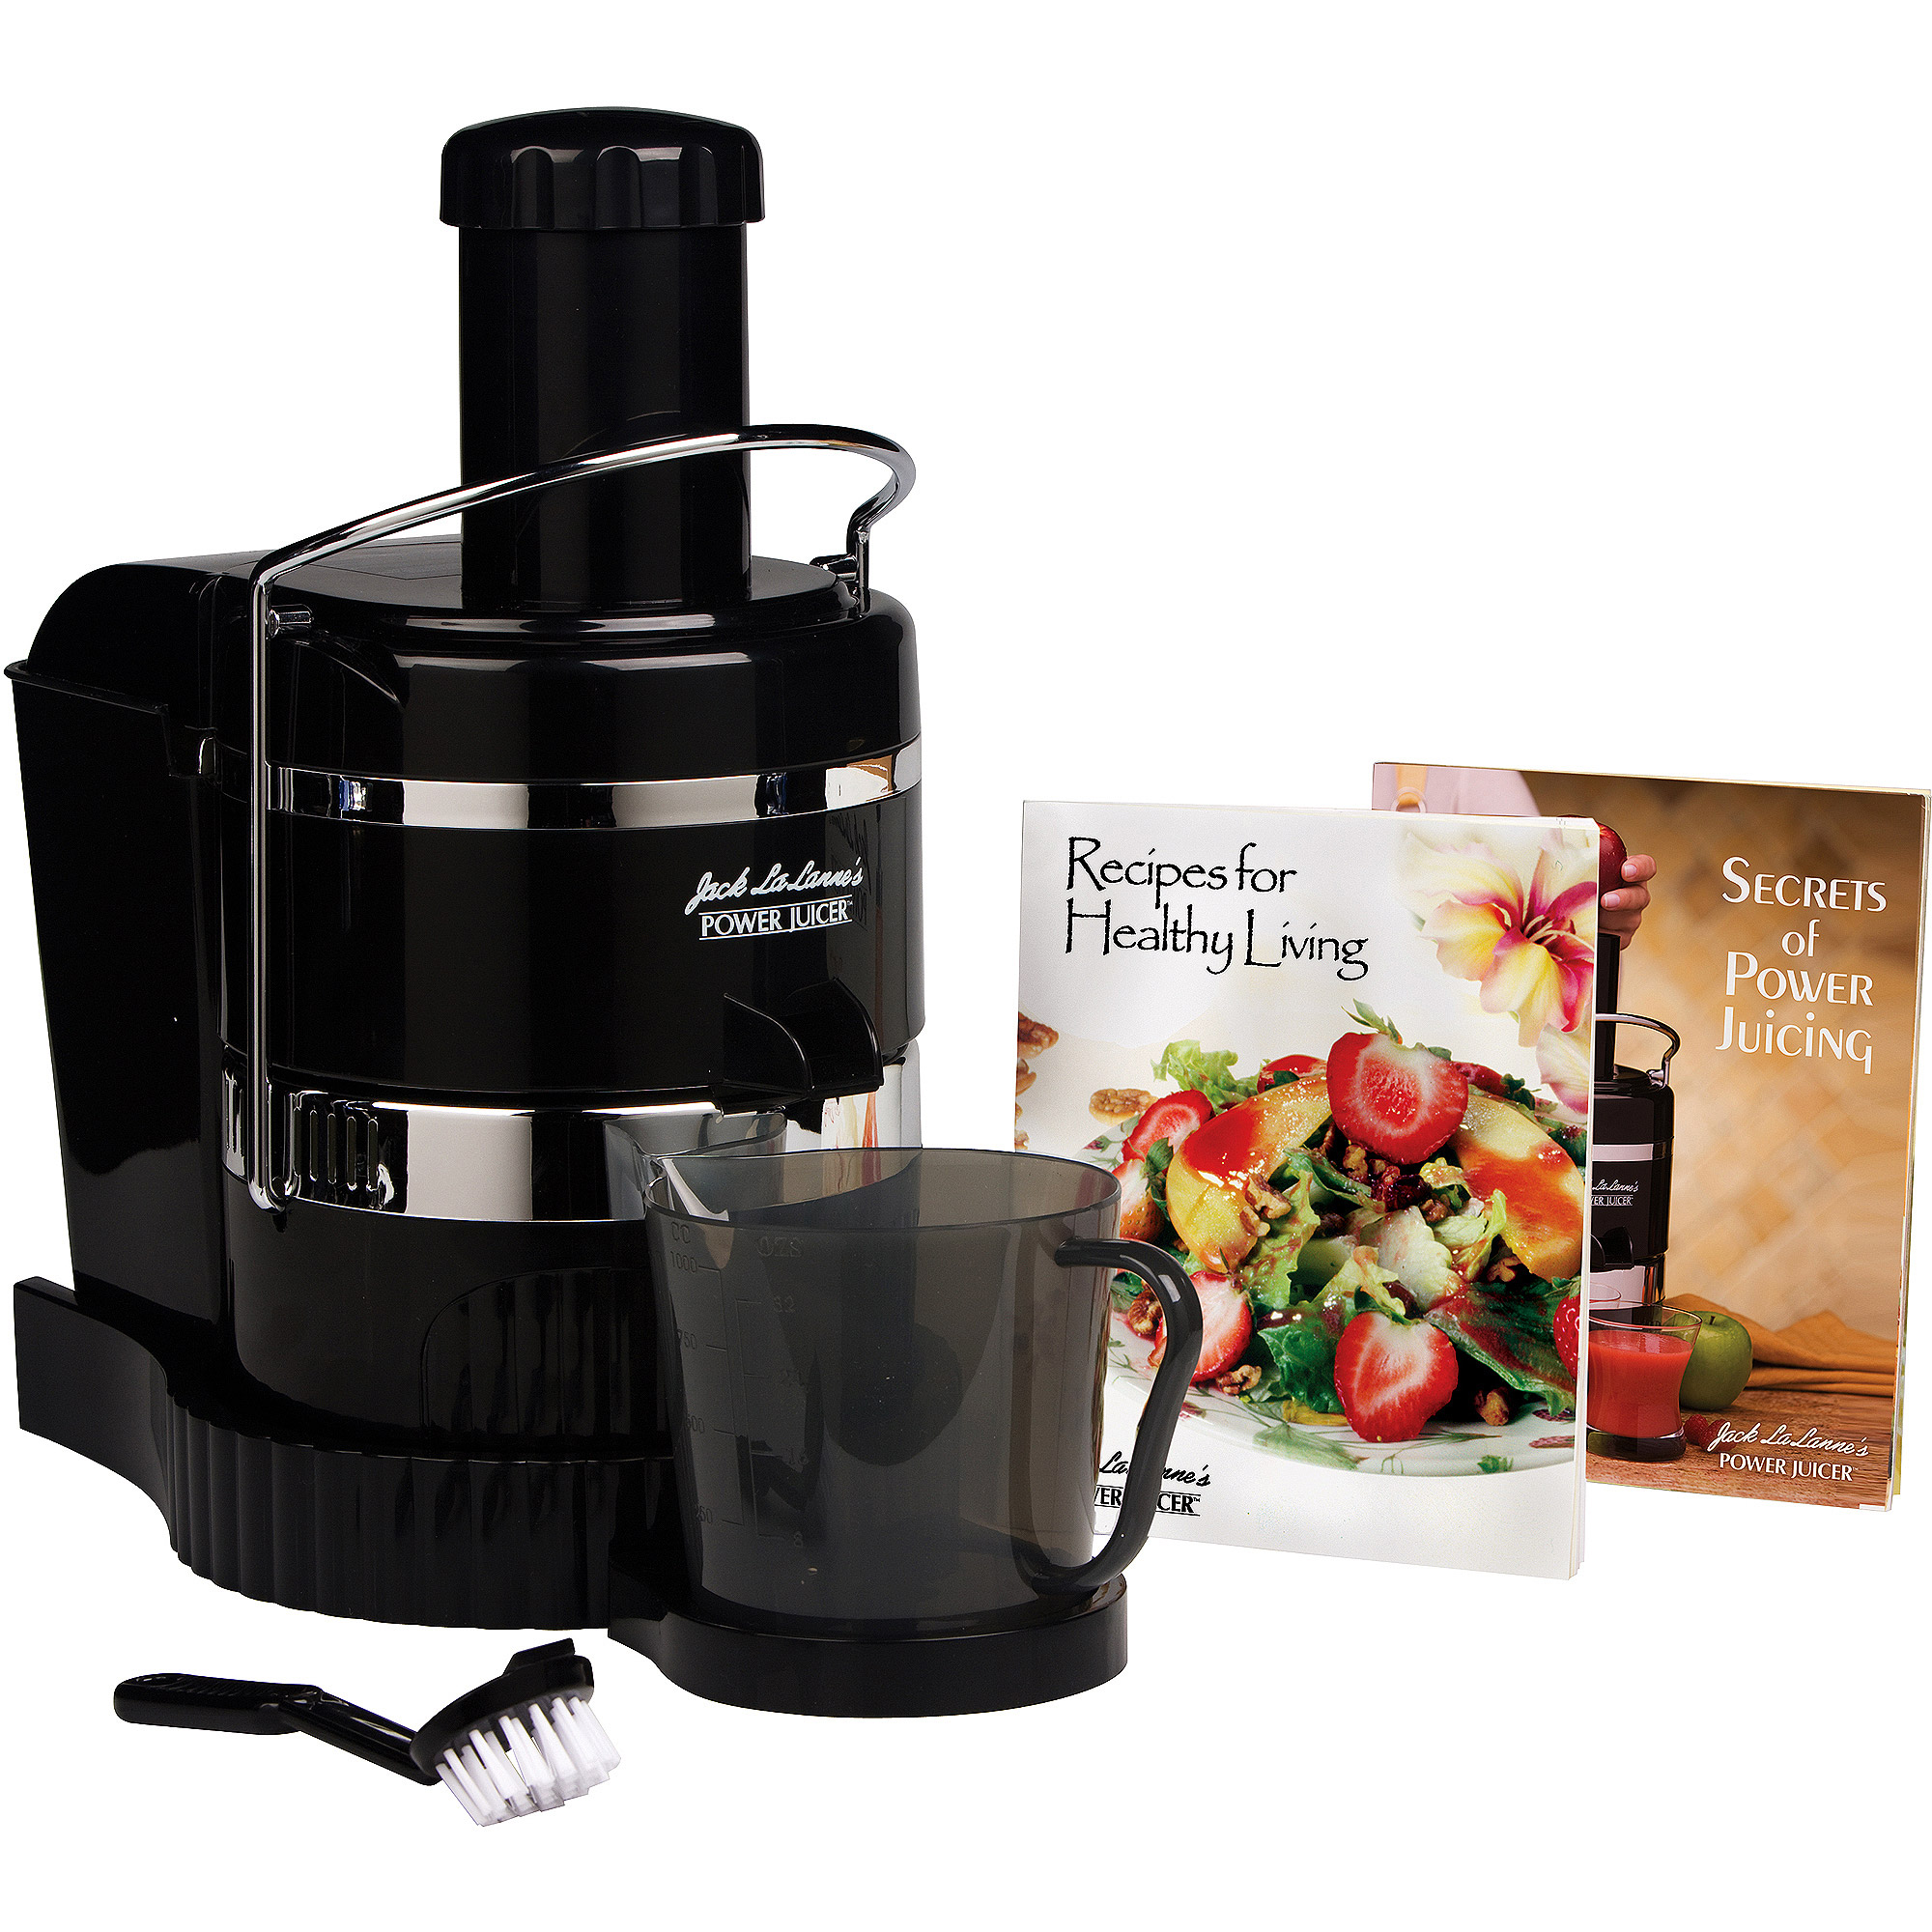 Jack LaLanne Power Juicer, Black